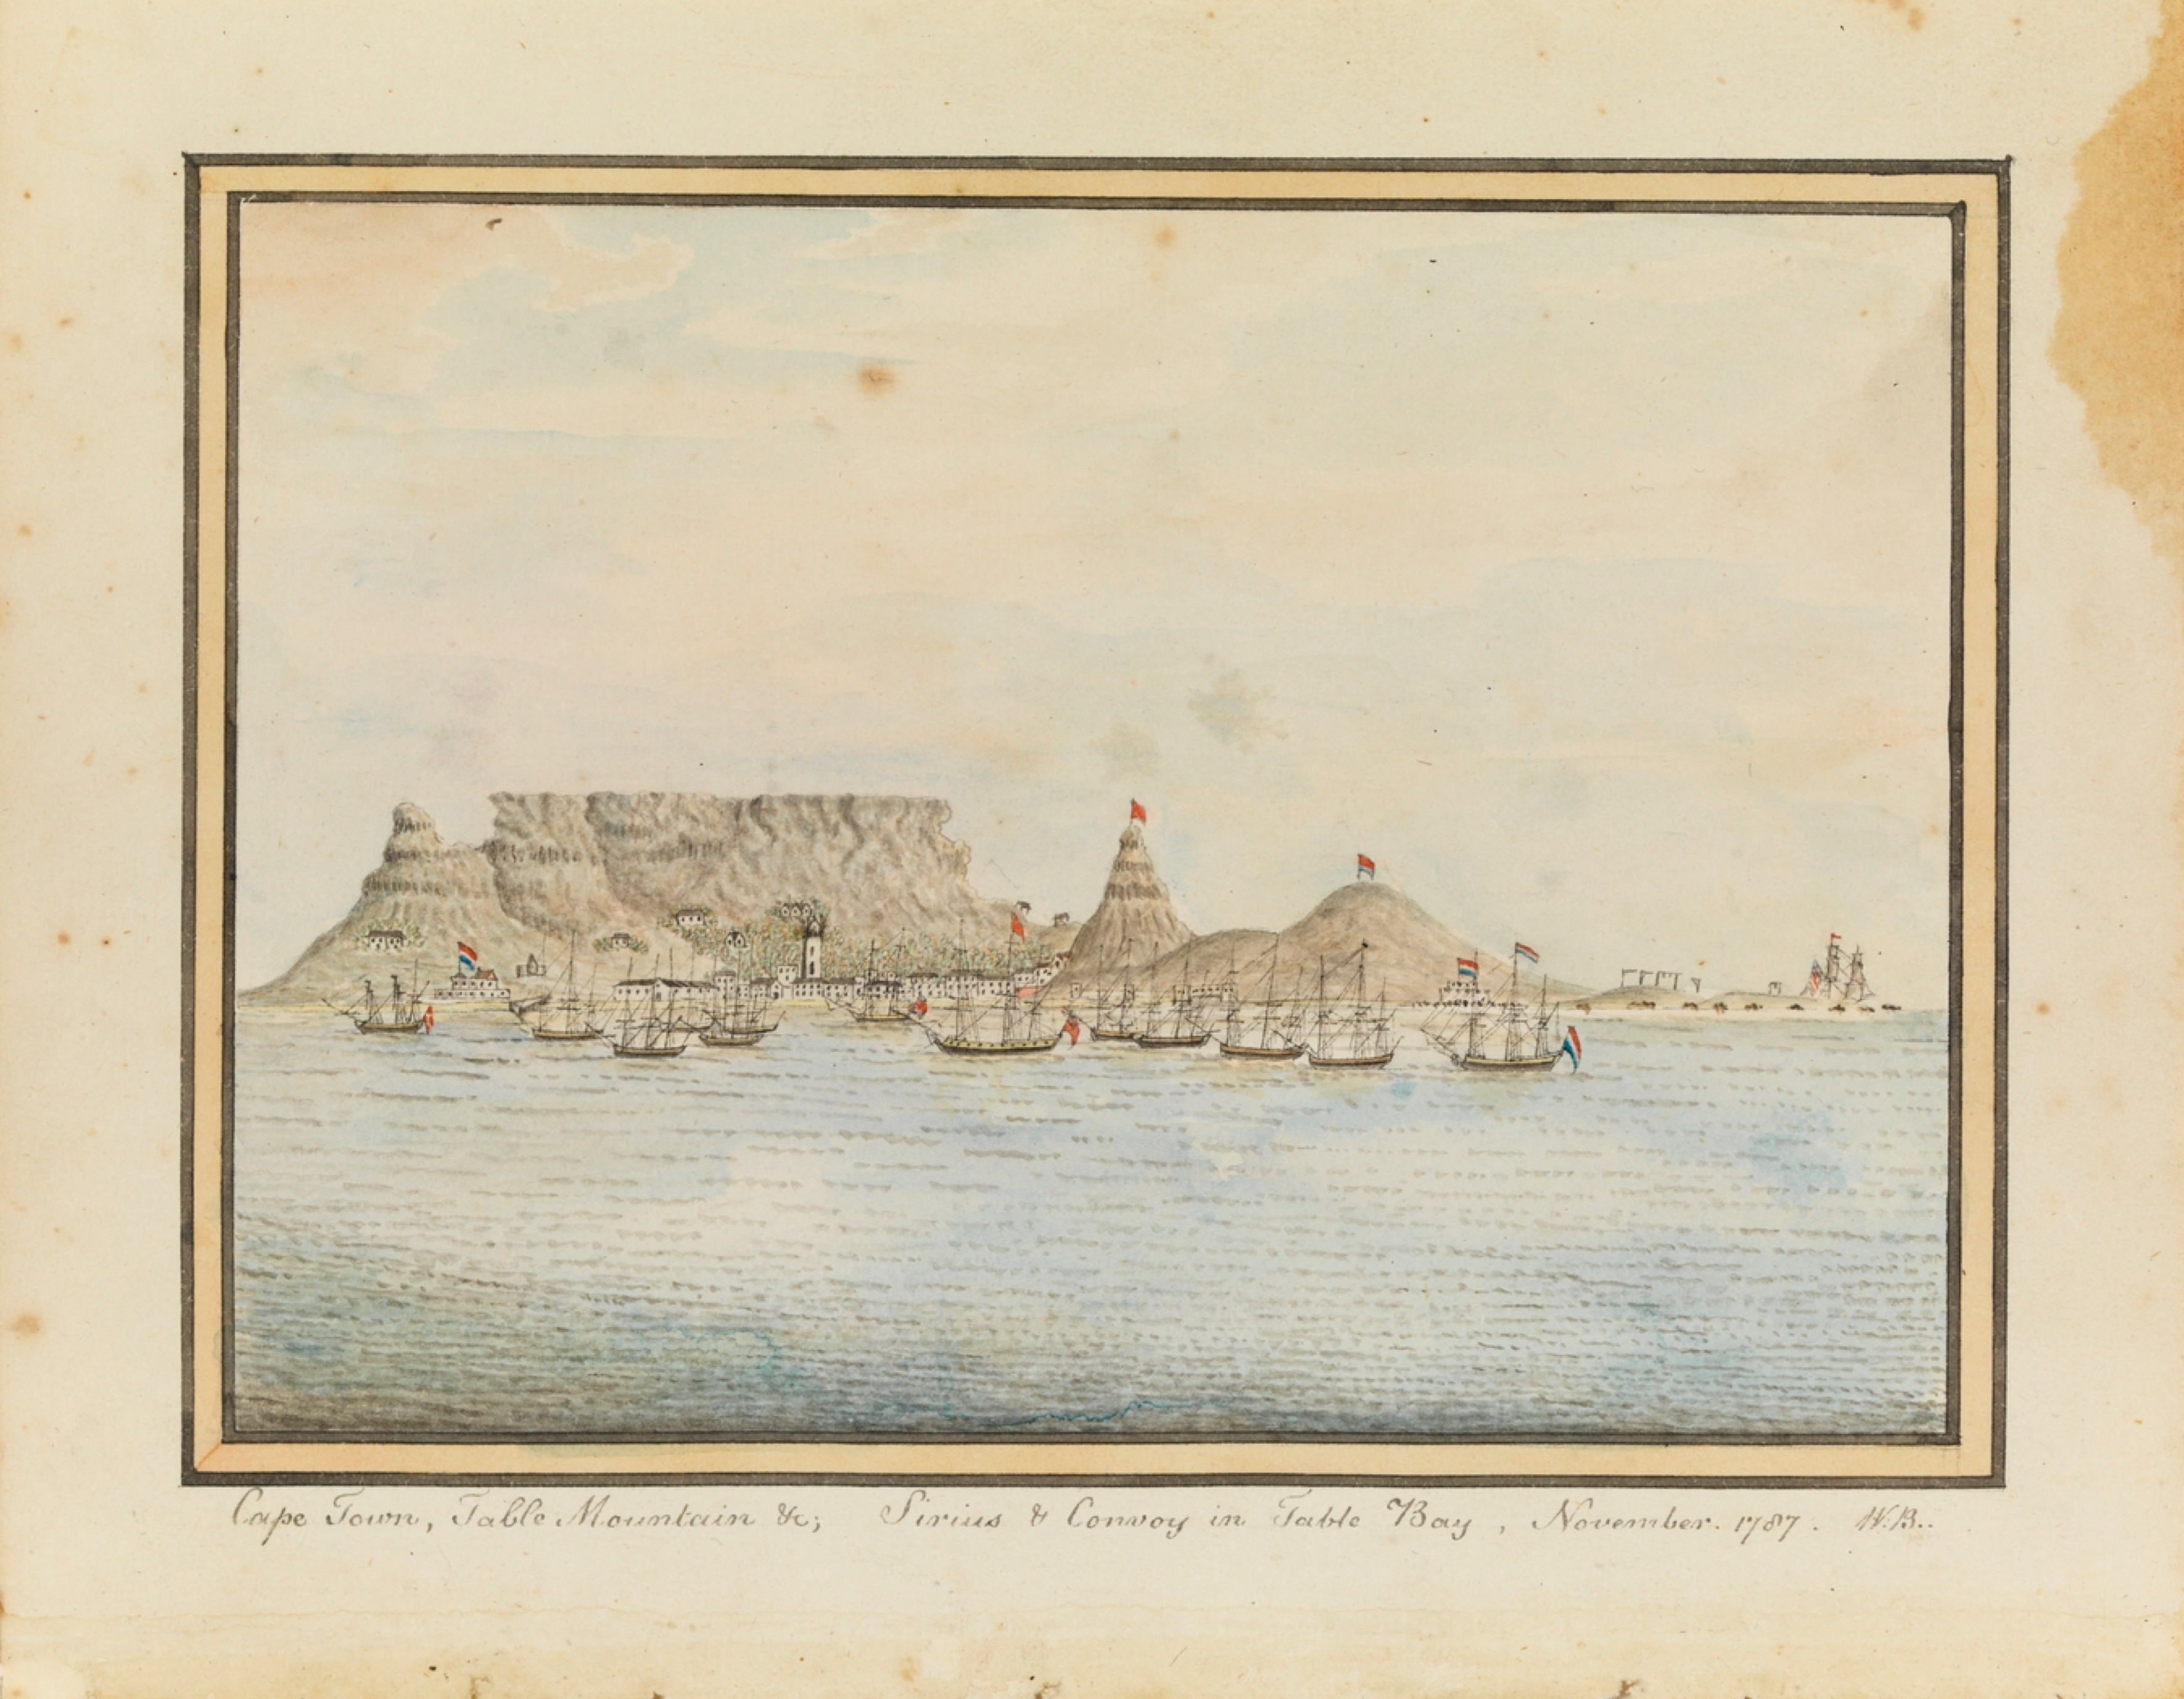 Cape Town, Table Mountain &c; Sirius & Convoy in Table Bay, November 1787